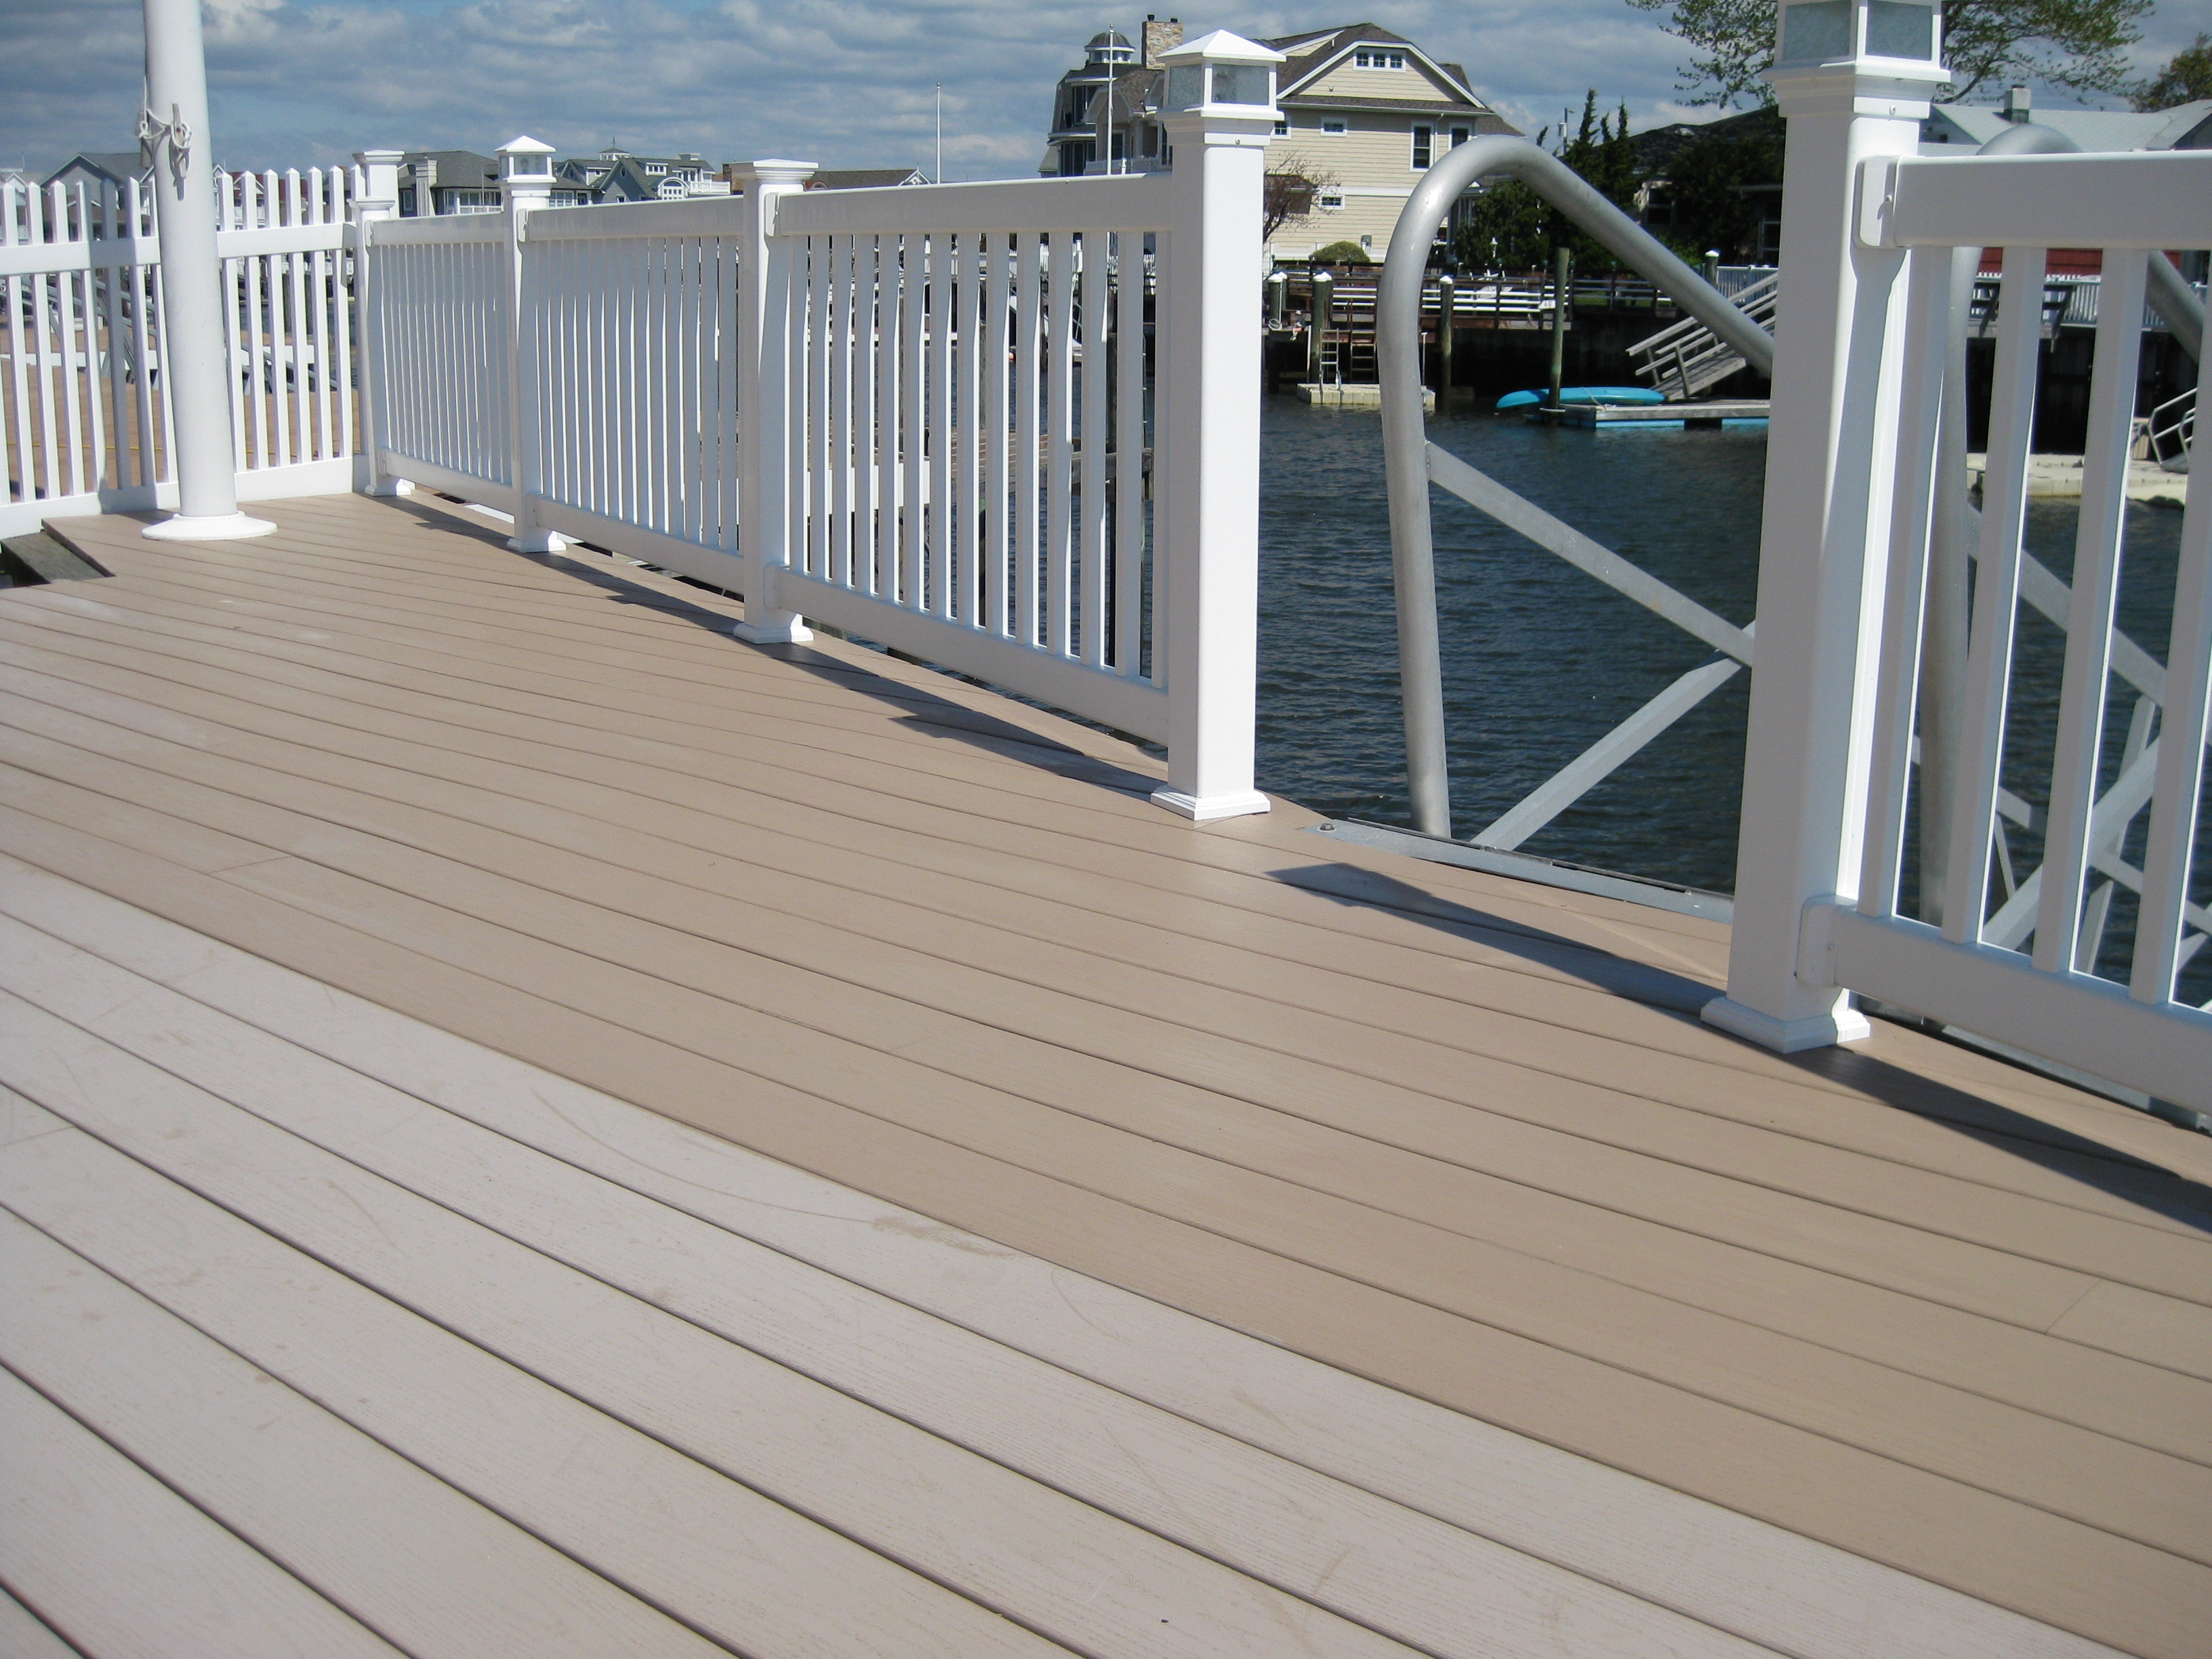 Diy Deck Cleaner Best Deck Cleaner Diy Deck Cleaner And Restore A Deck